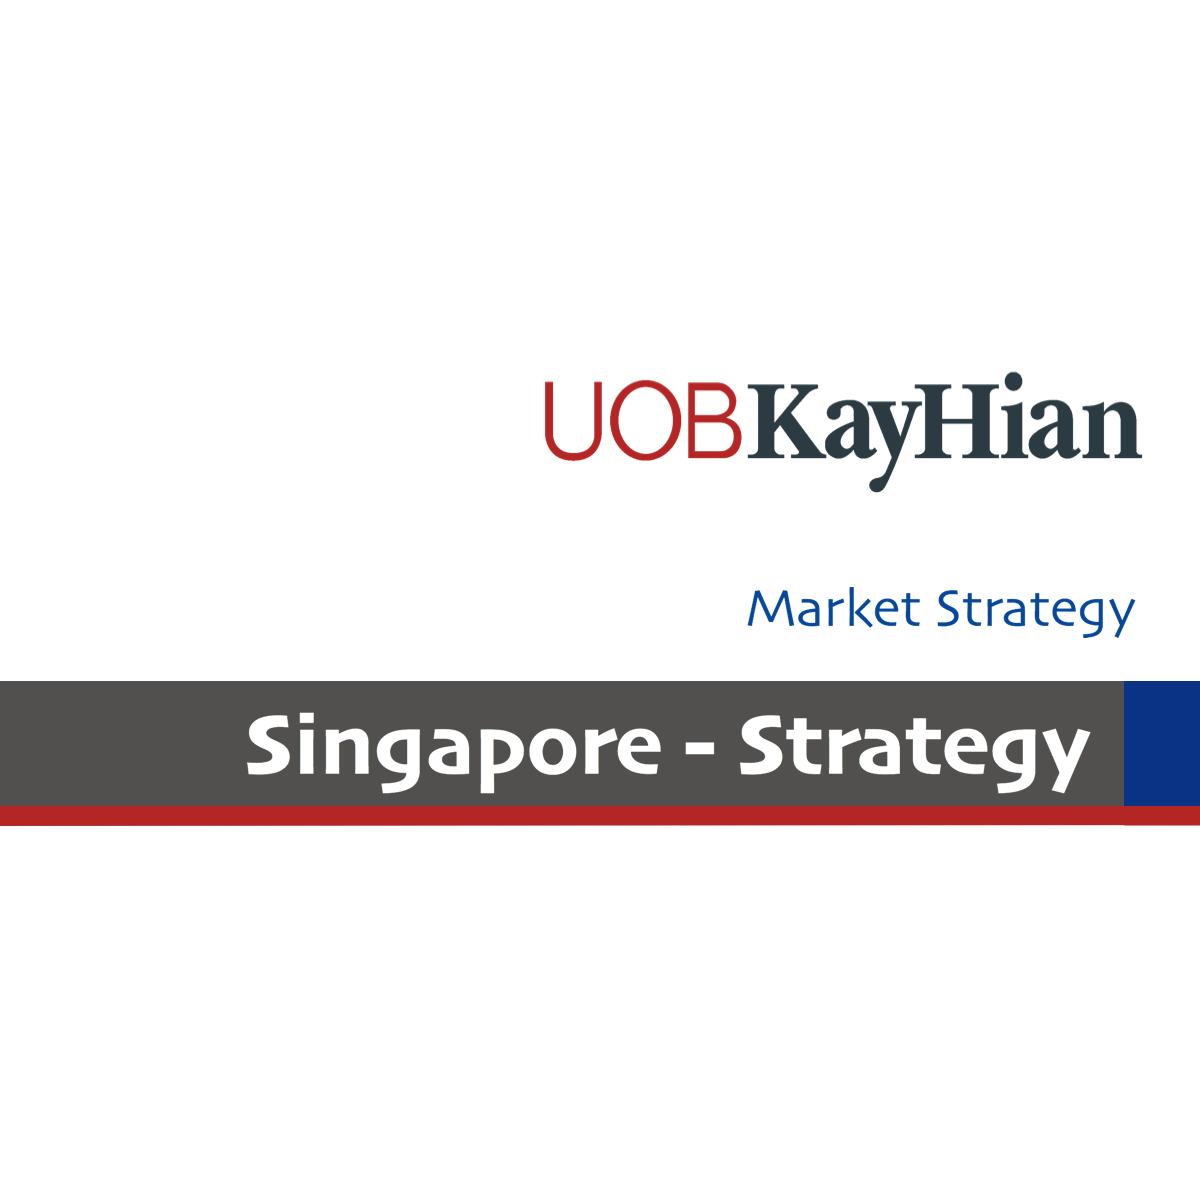 Singapore Strategy 1Q17 Report Card - UOB Kay Hian 2017-05-17: Upward Revision In Market Earnings